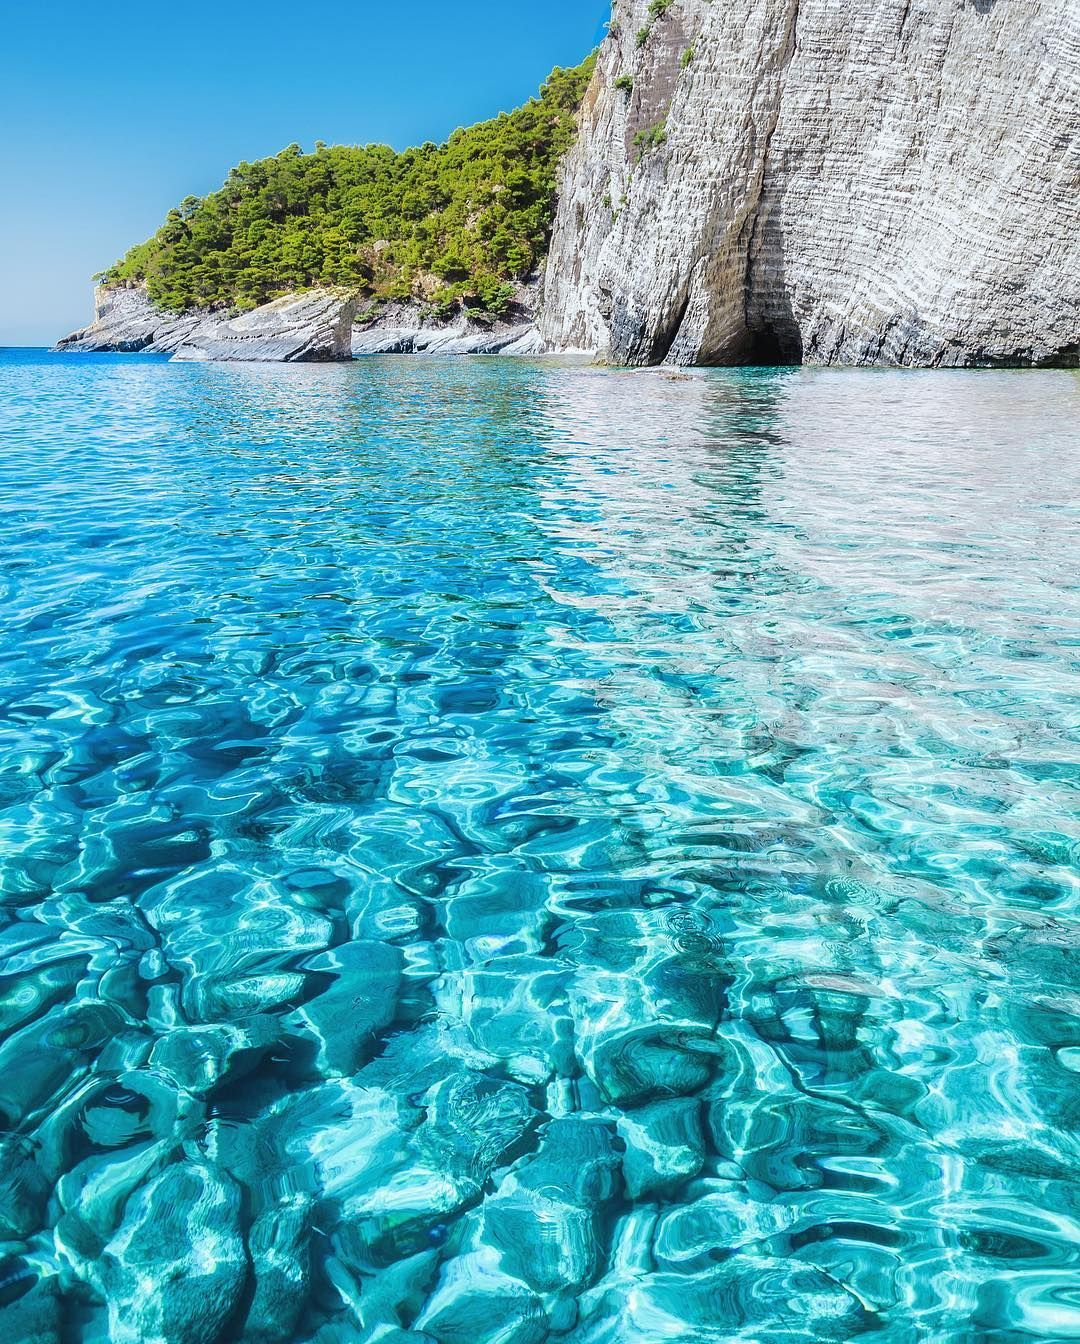 A Crystal Clear Sea Picture Taken In Mljet Croatia The Perfect Place For Swimming Activity Croatia Travel Mljet Croatia Croatia Croatian Islands